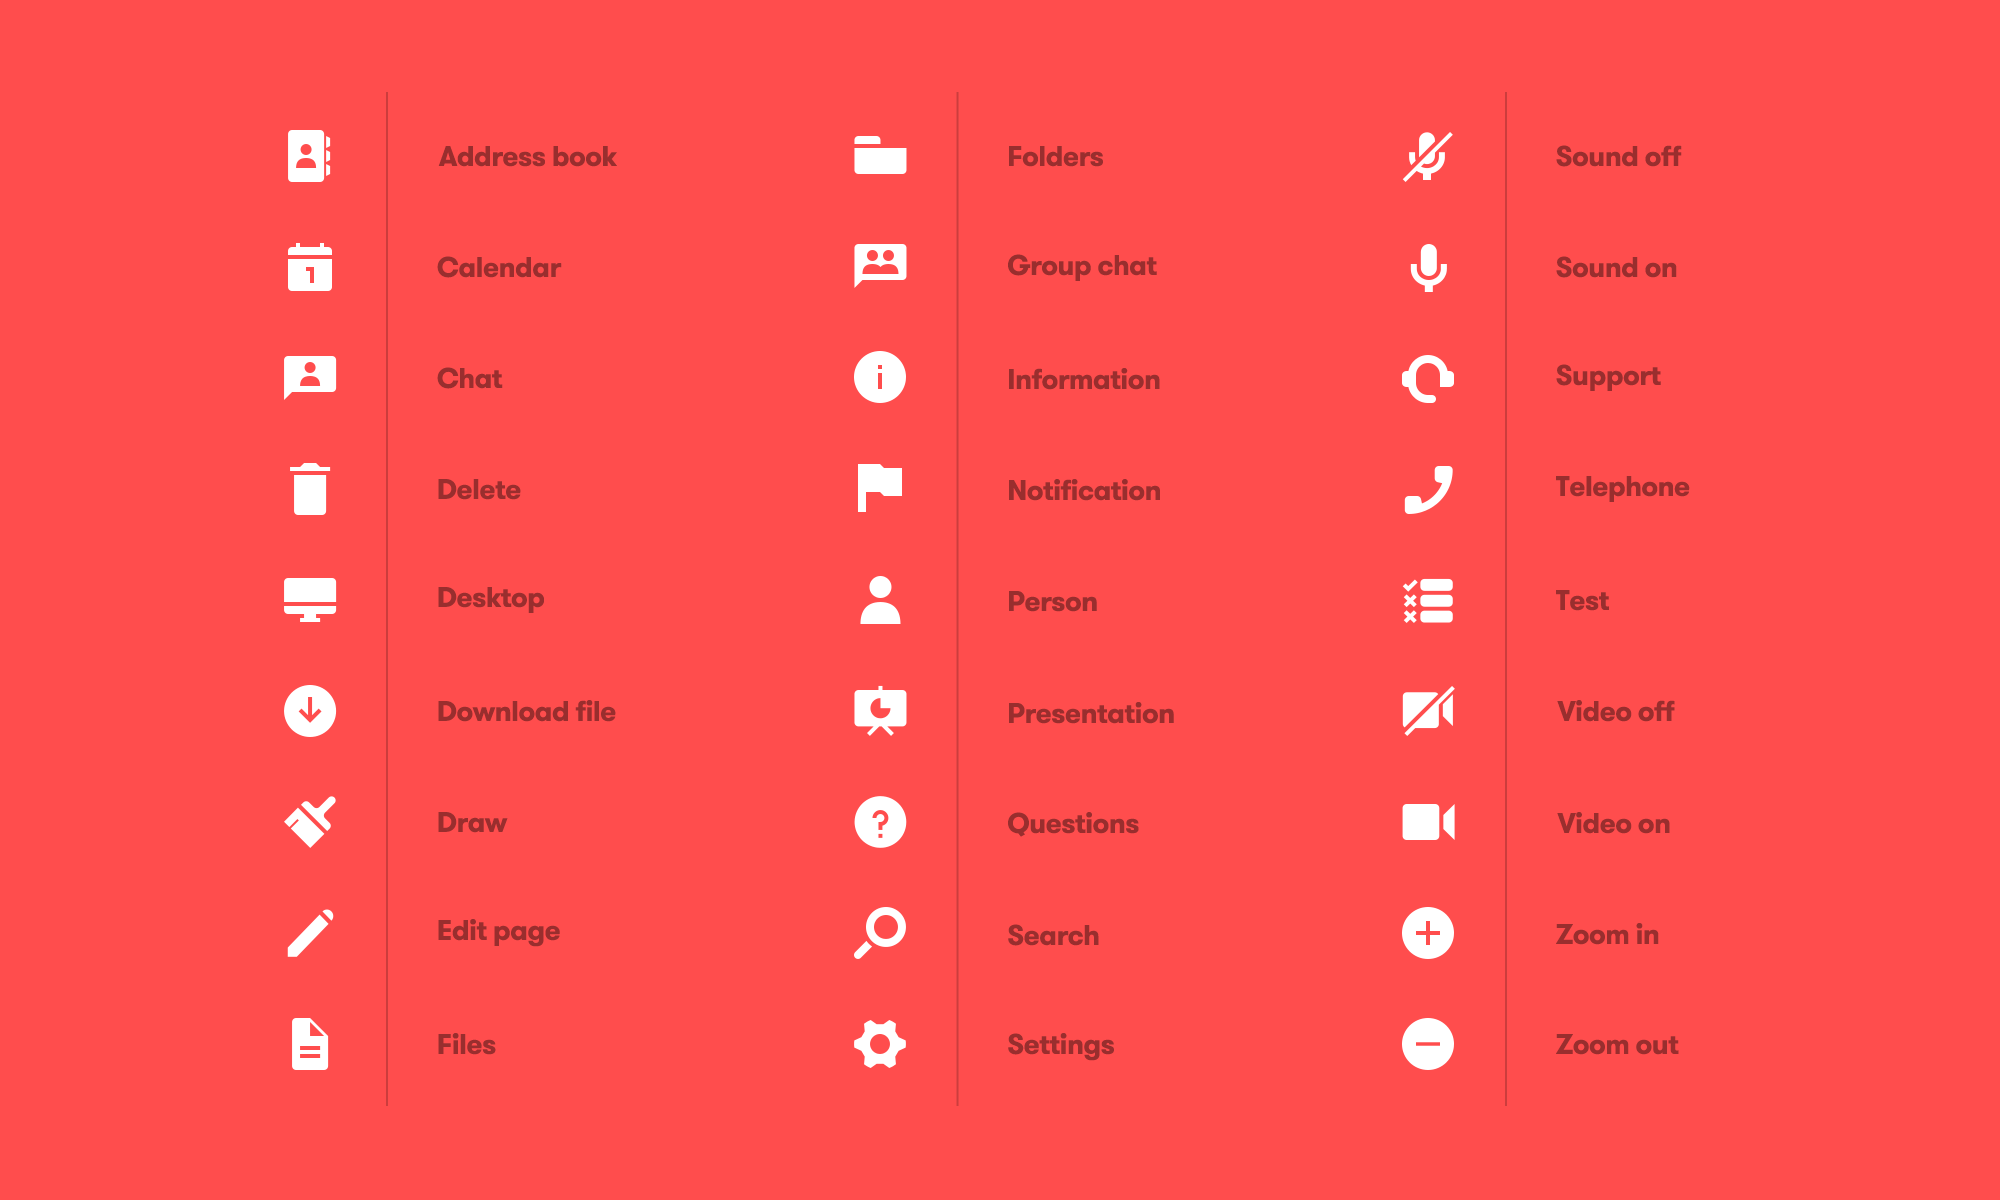 A look at all of the icons.